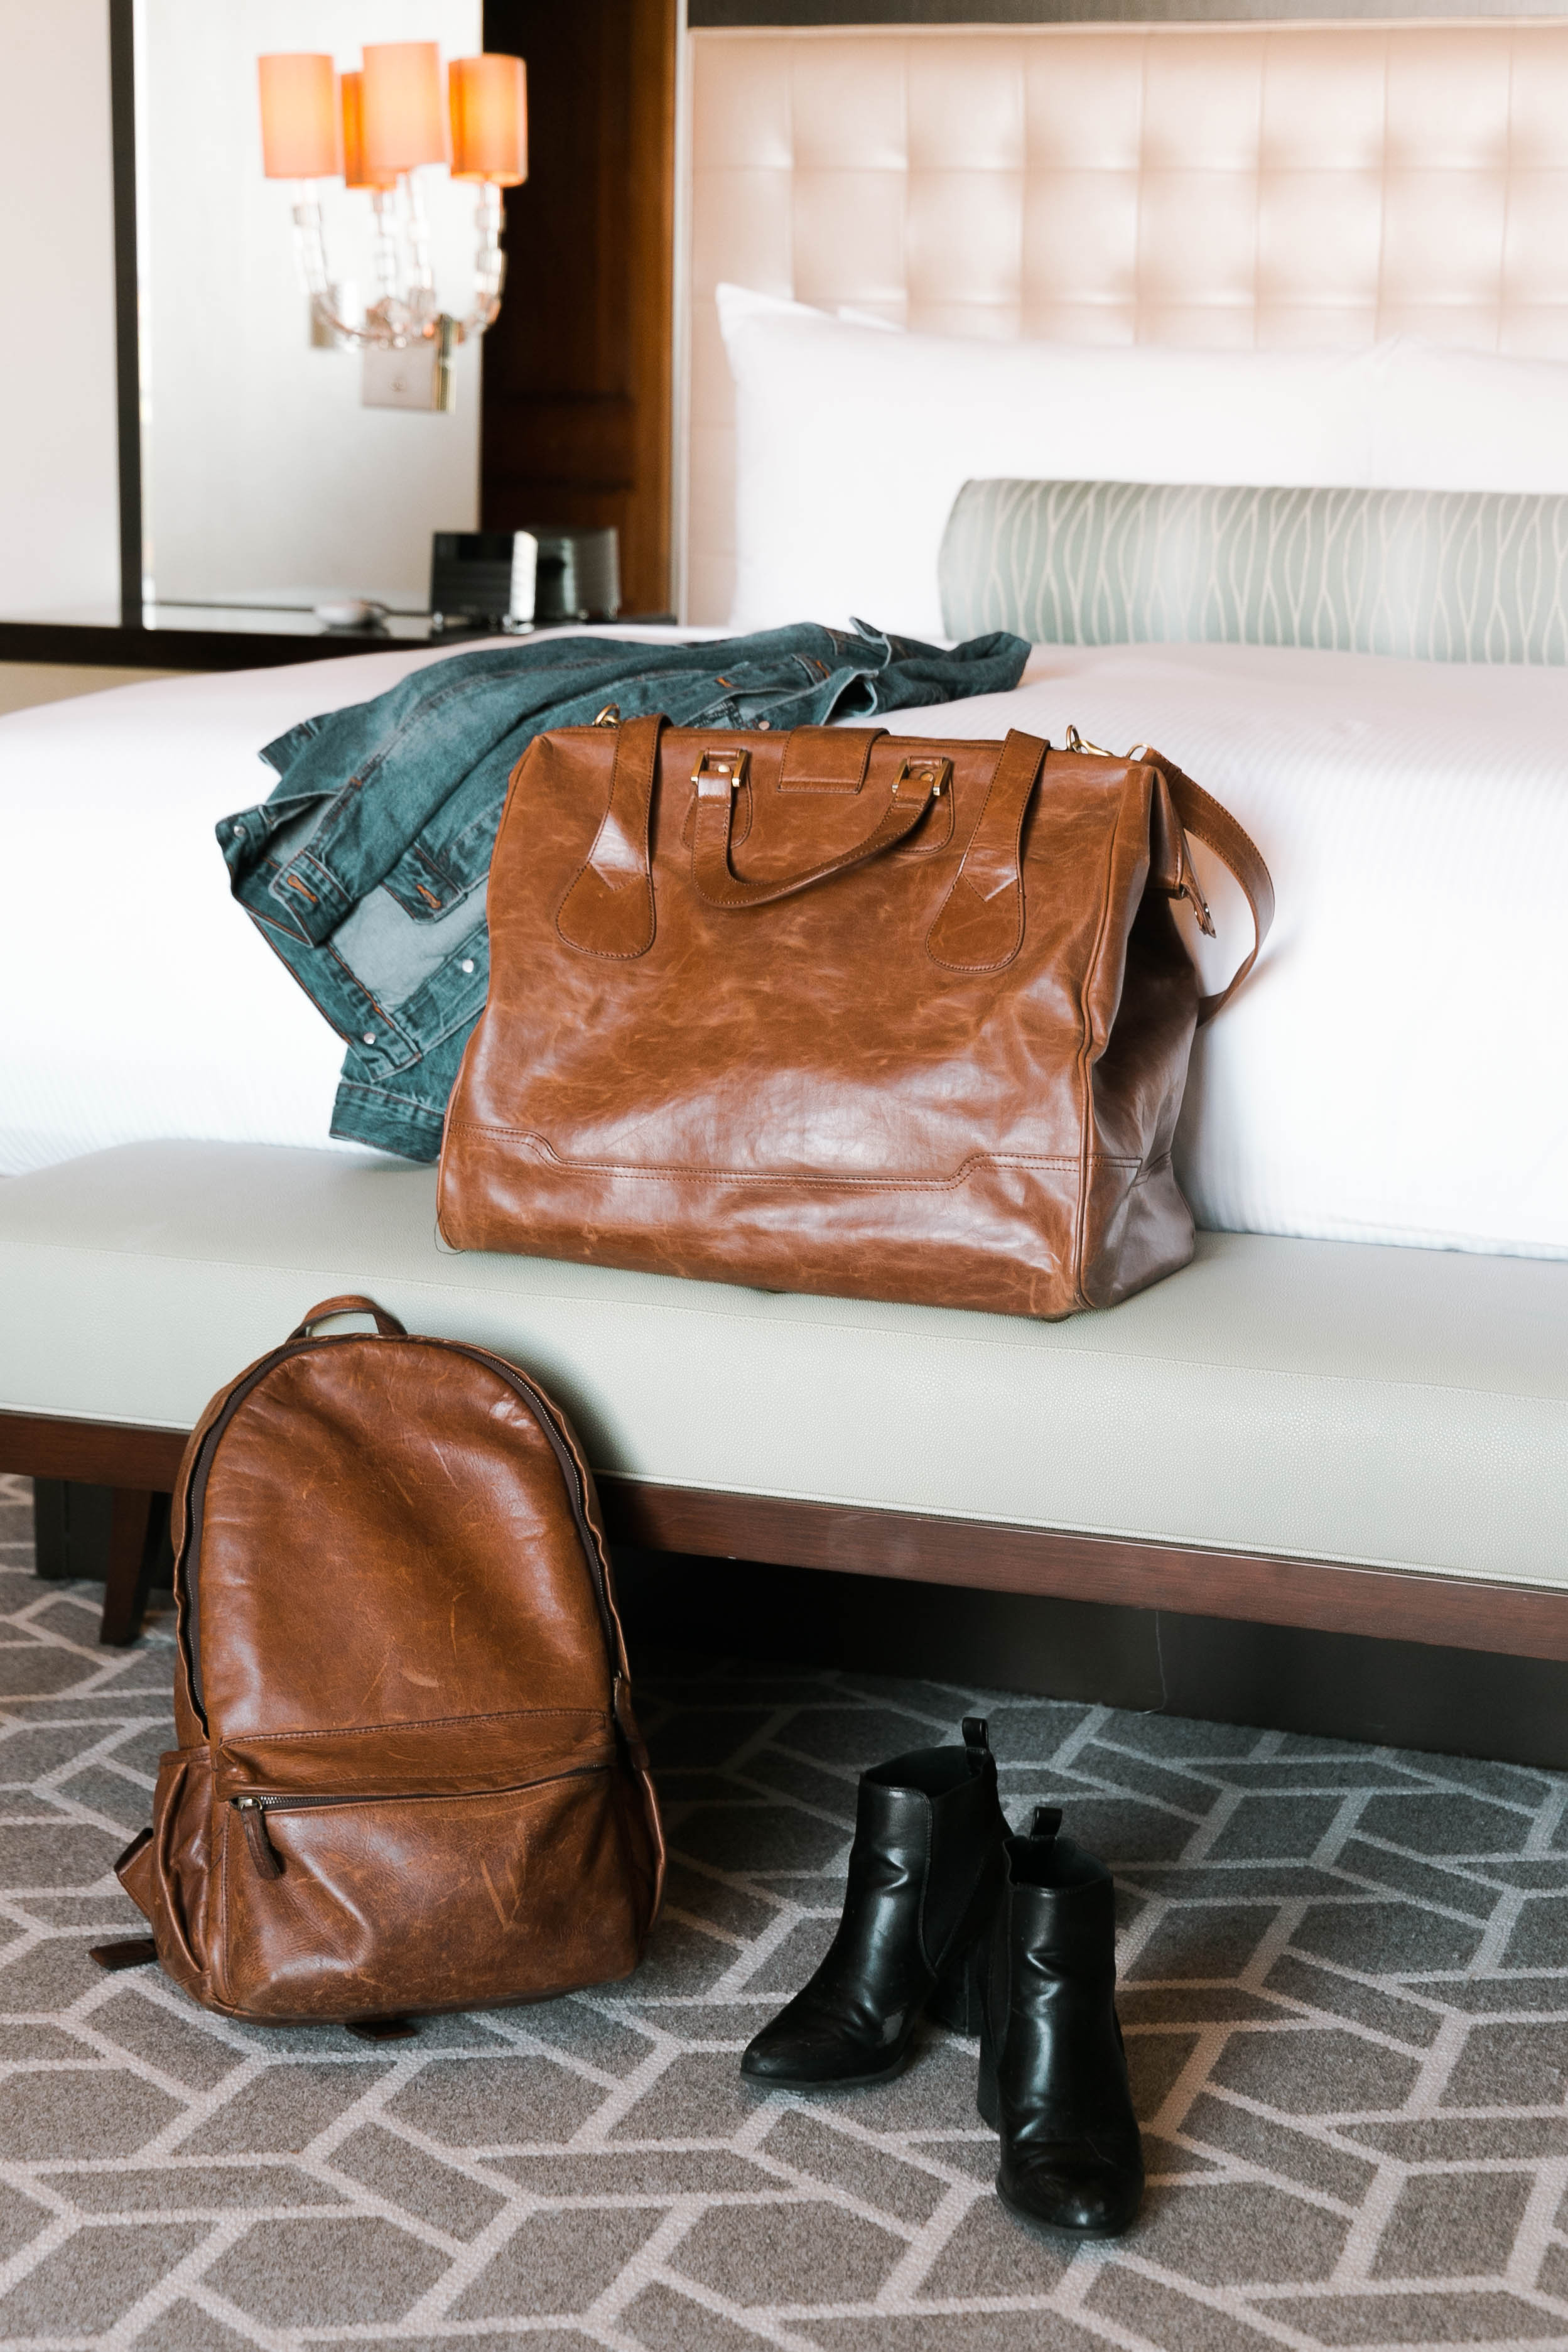 Luggage and jacket on the bed